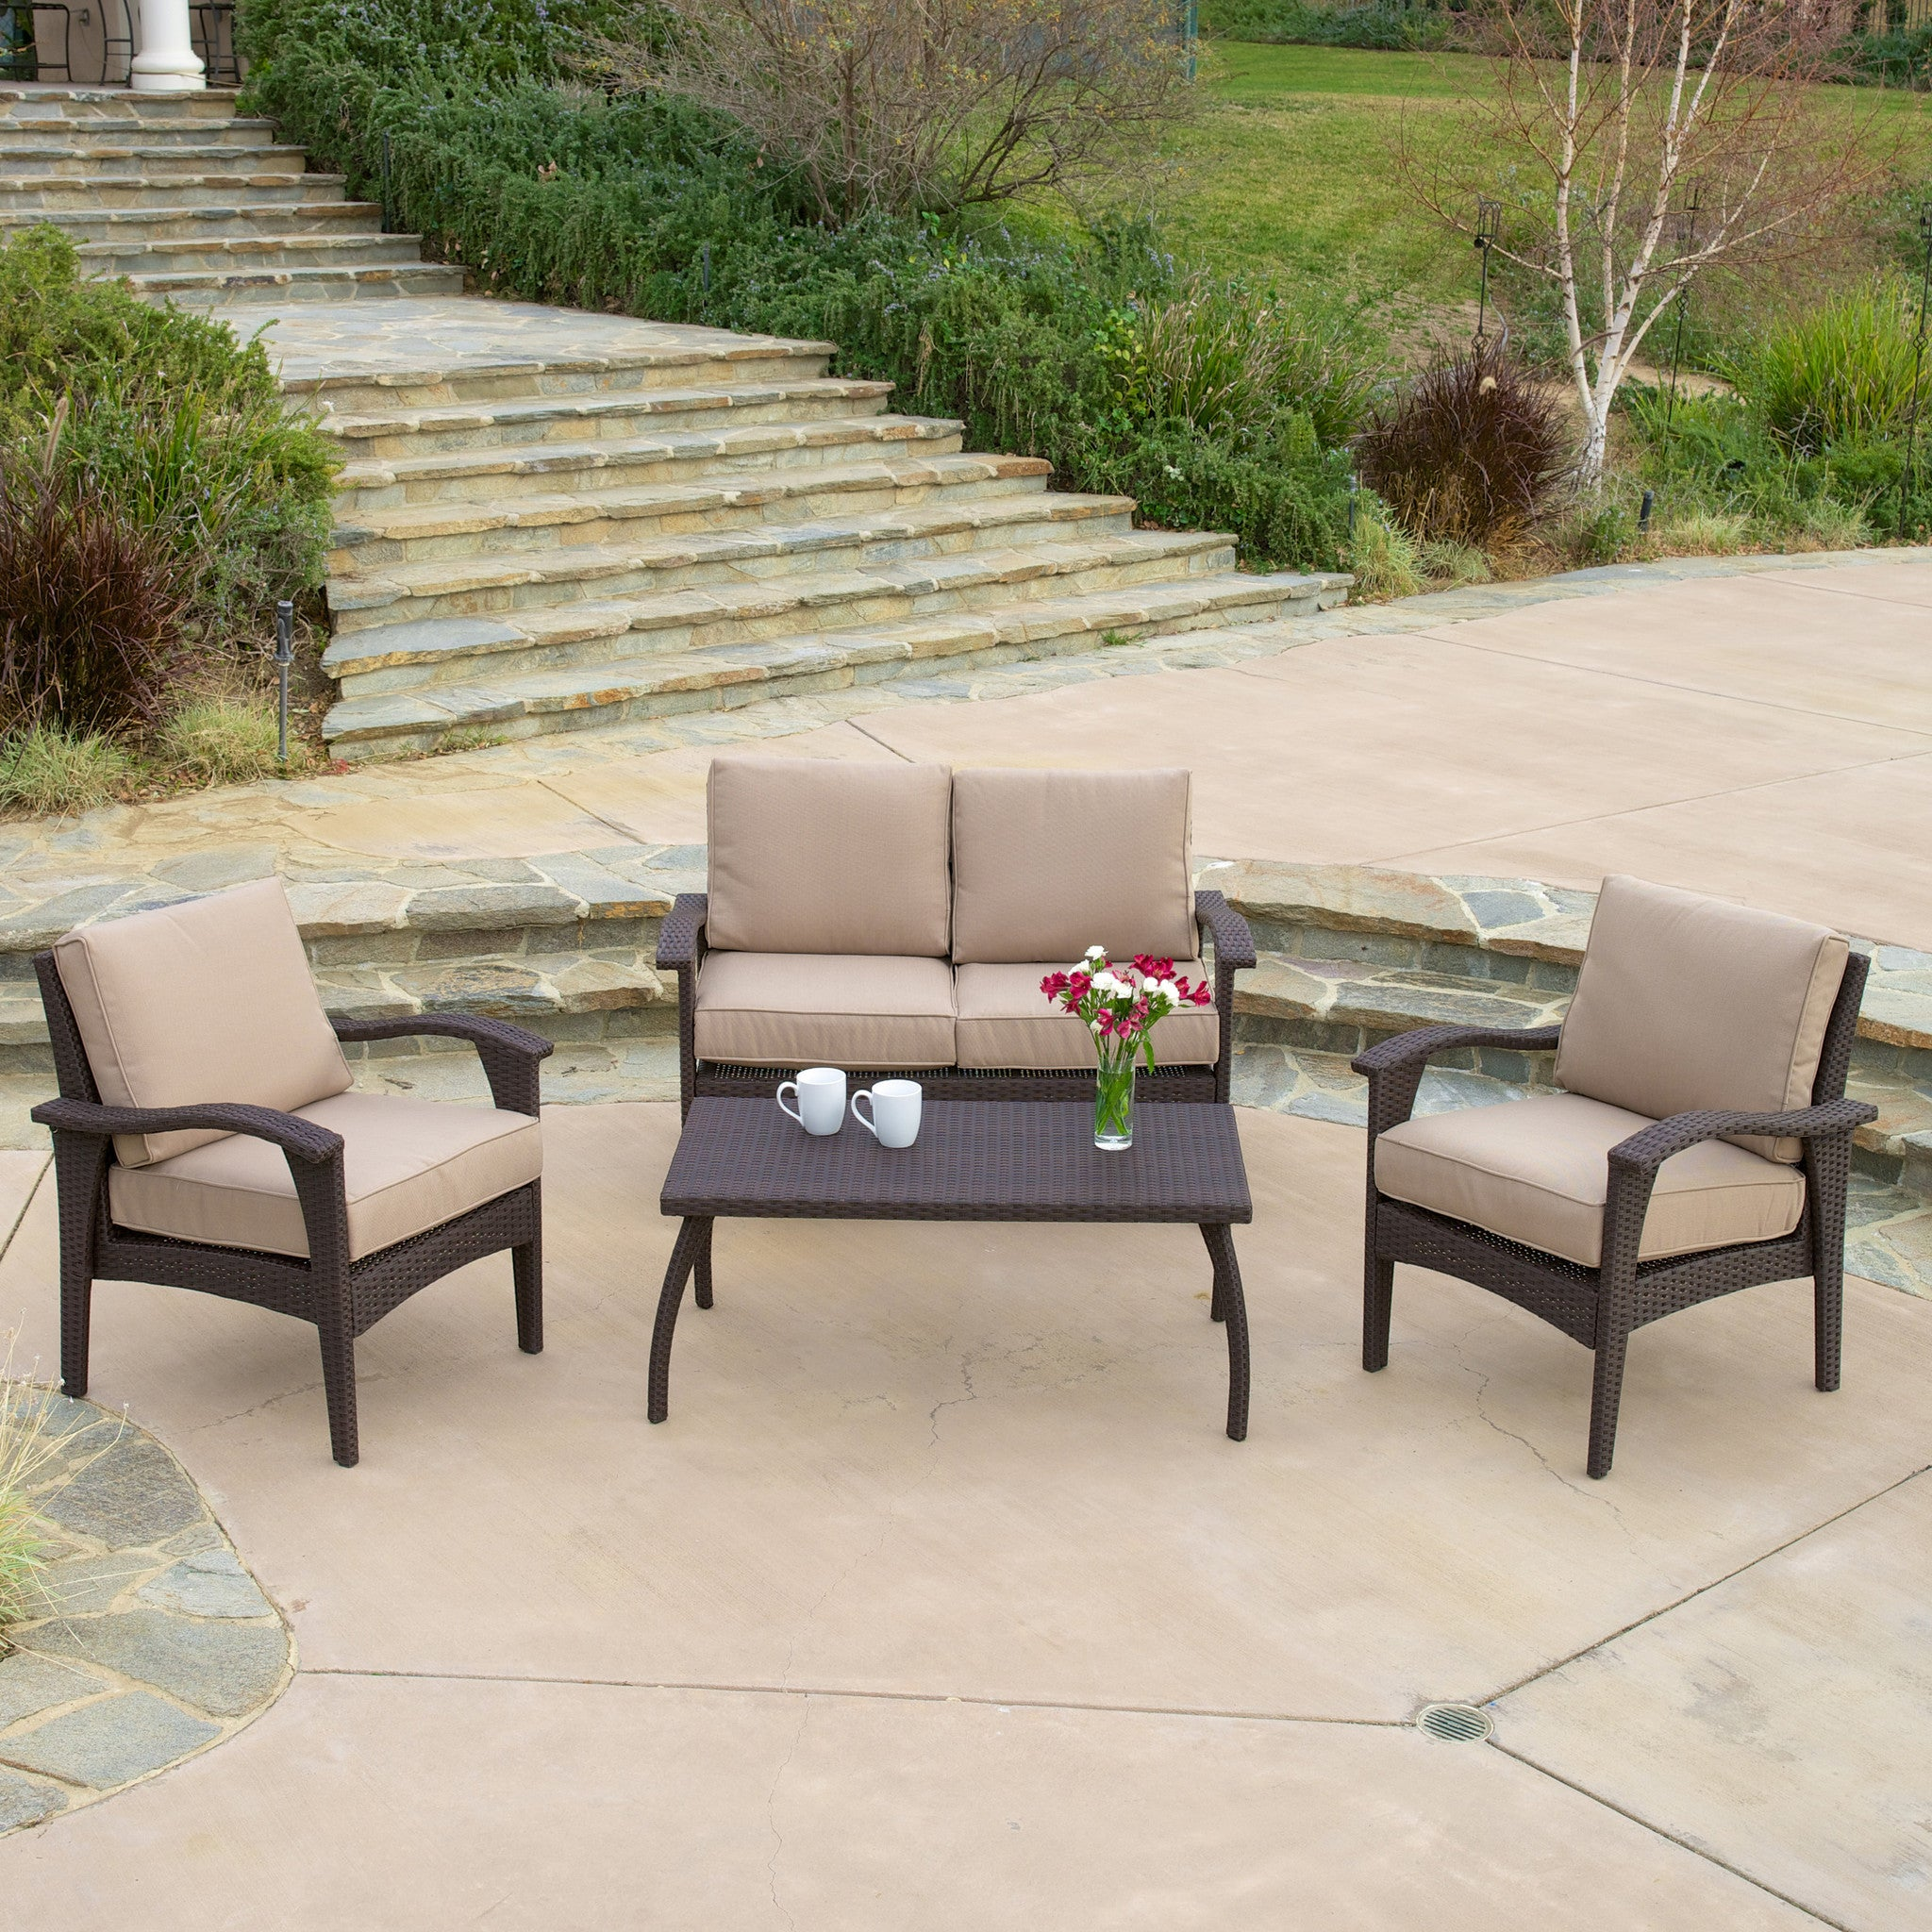 Outdoor Brown Wicker Sofa Set foto